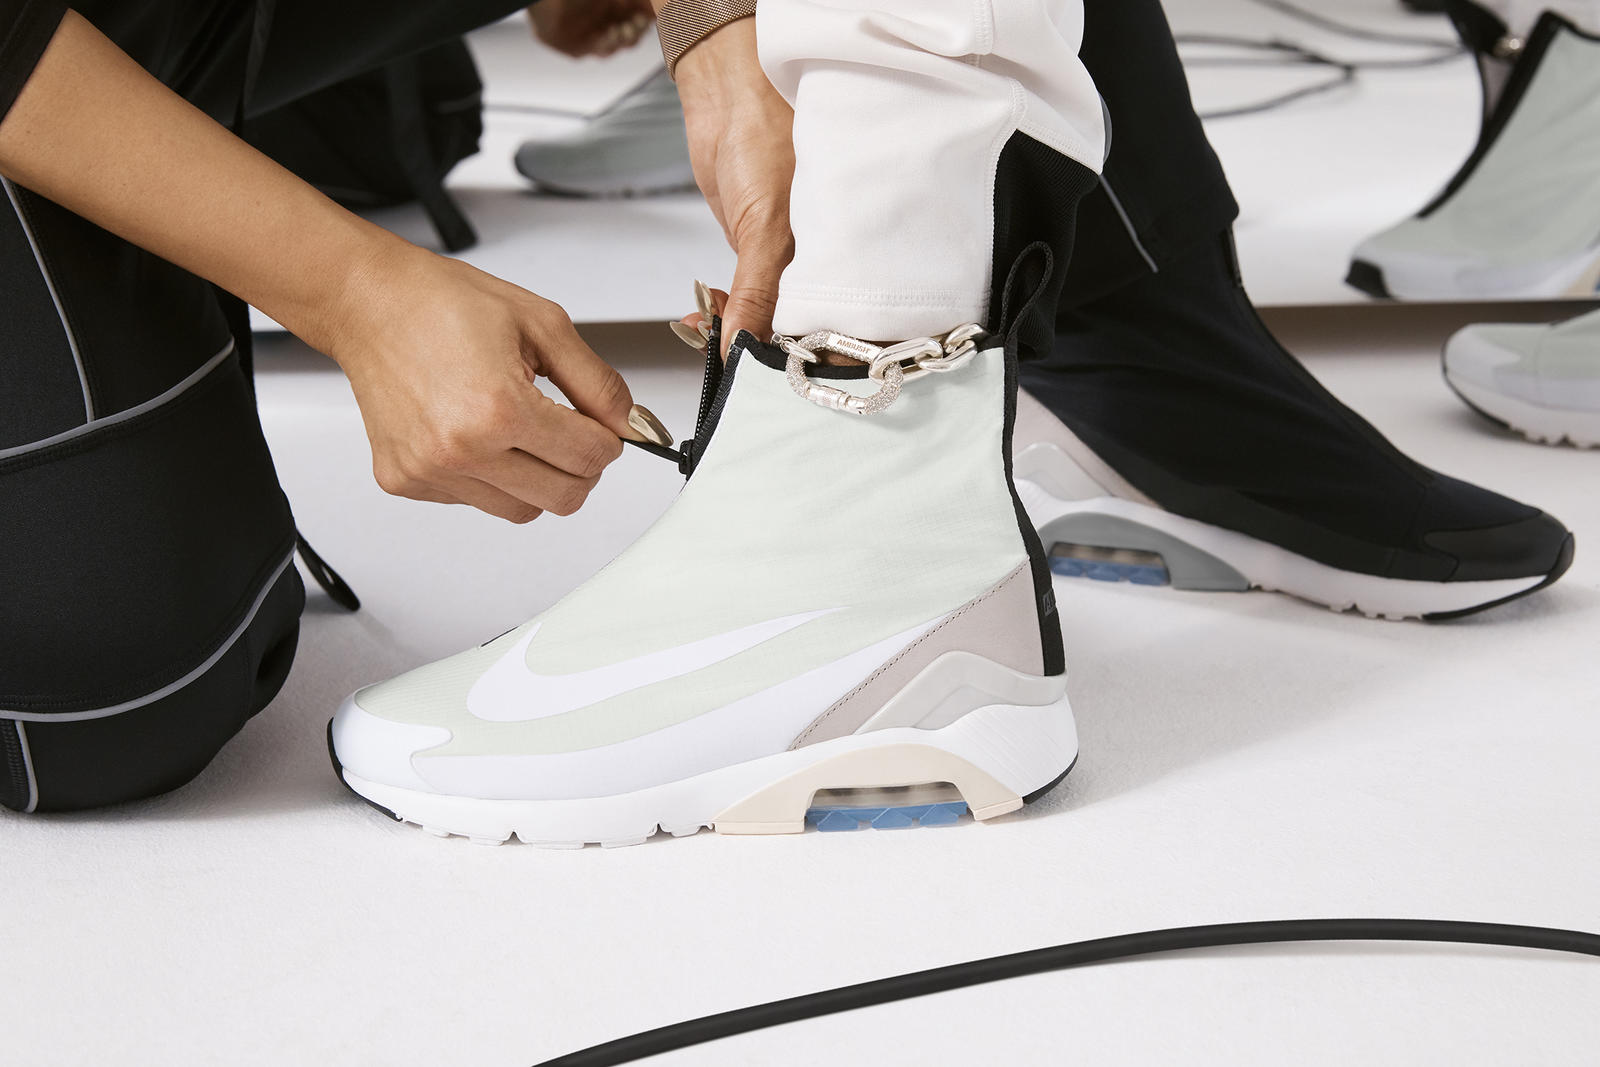 you still have a chance to pick up Yoon's shoe, the Nike x AMBUSH® Air Max 180 will be available in spring 2019.